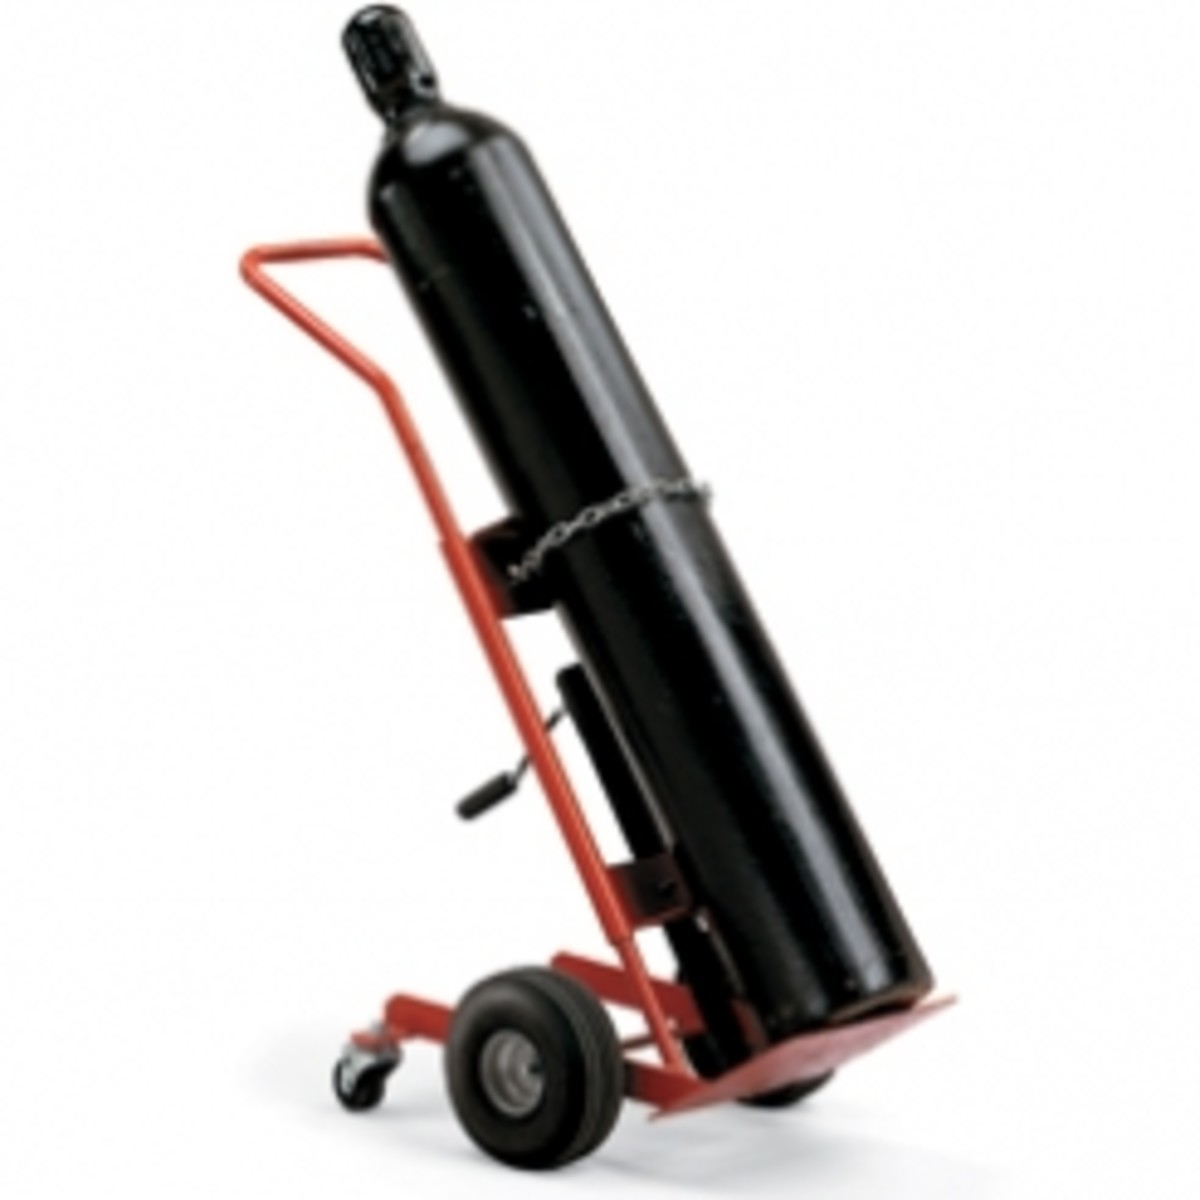 Gas Cylinder Truck or Caddy Lifter